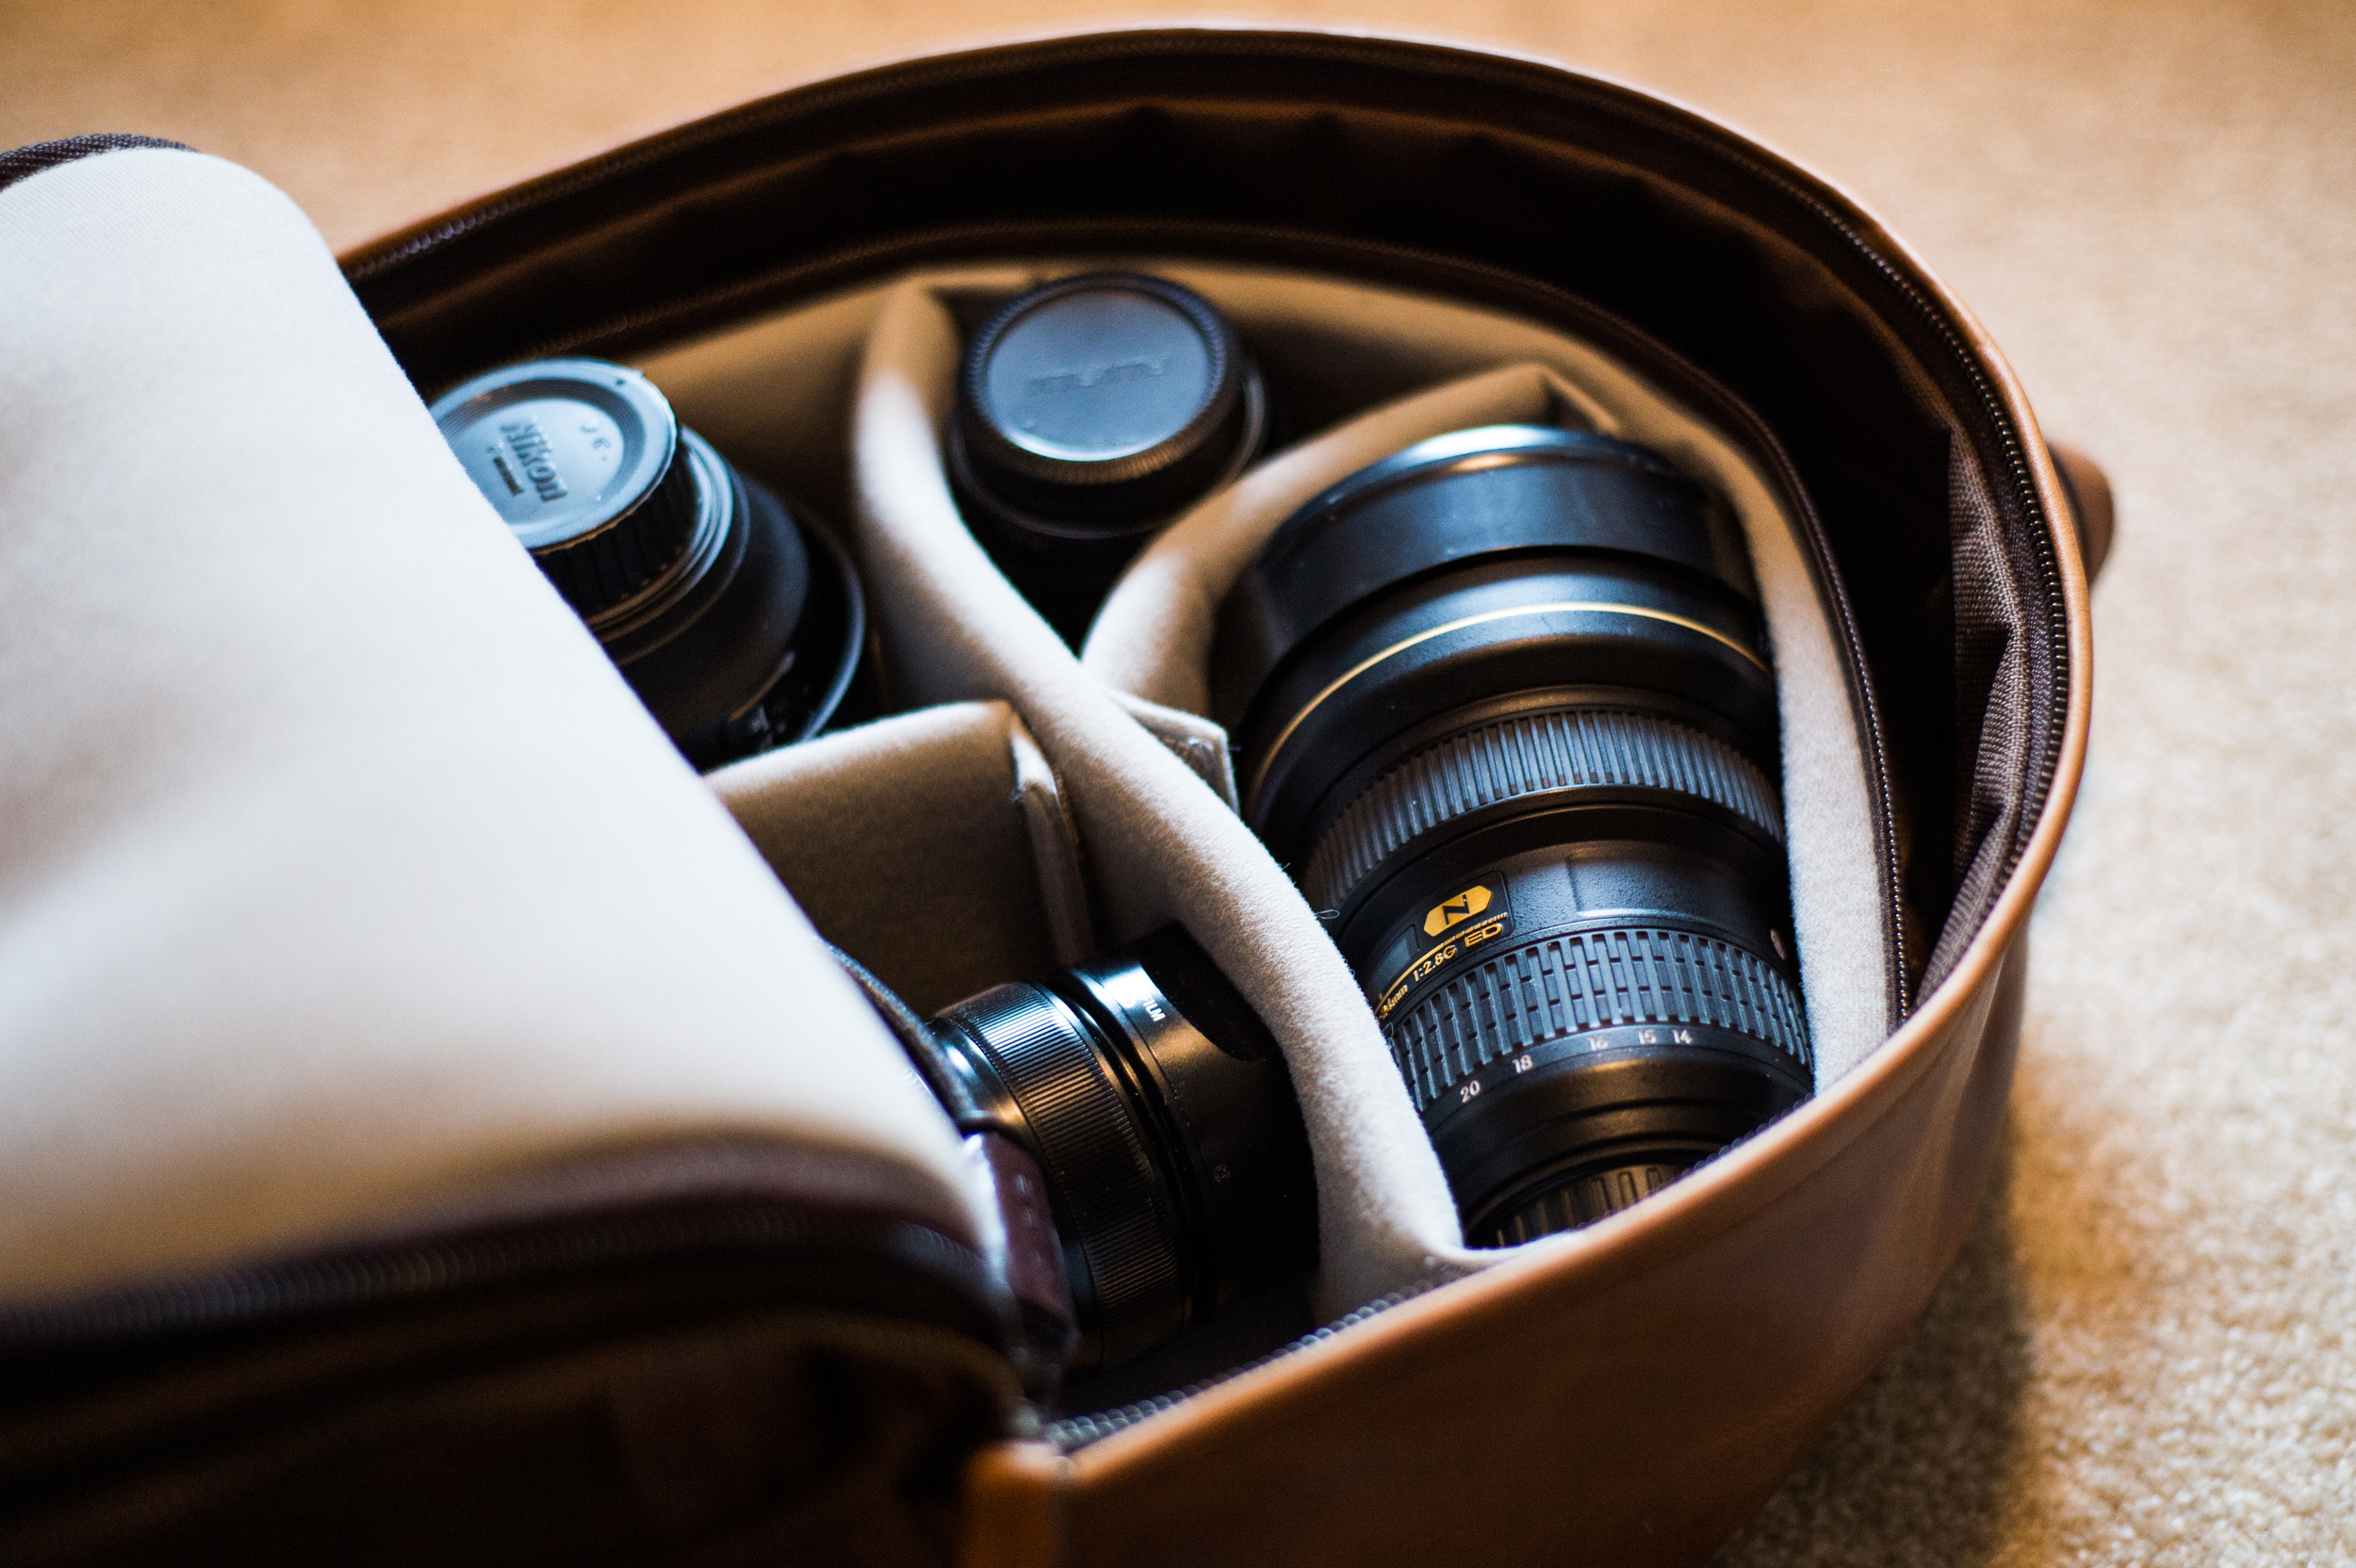 Two FX DSLR Lens, a mirrorless body and a mirrorless lens